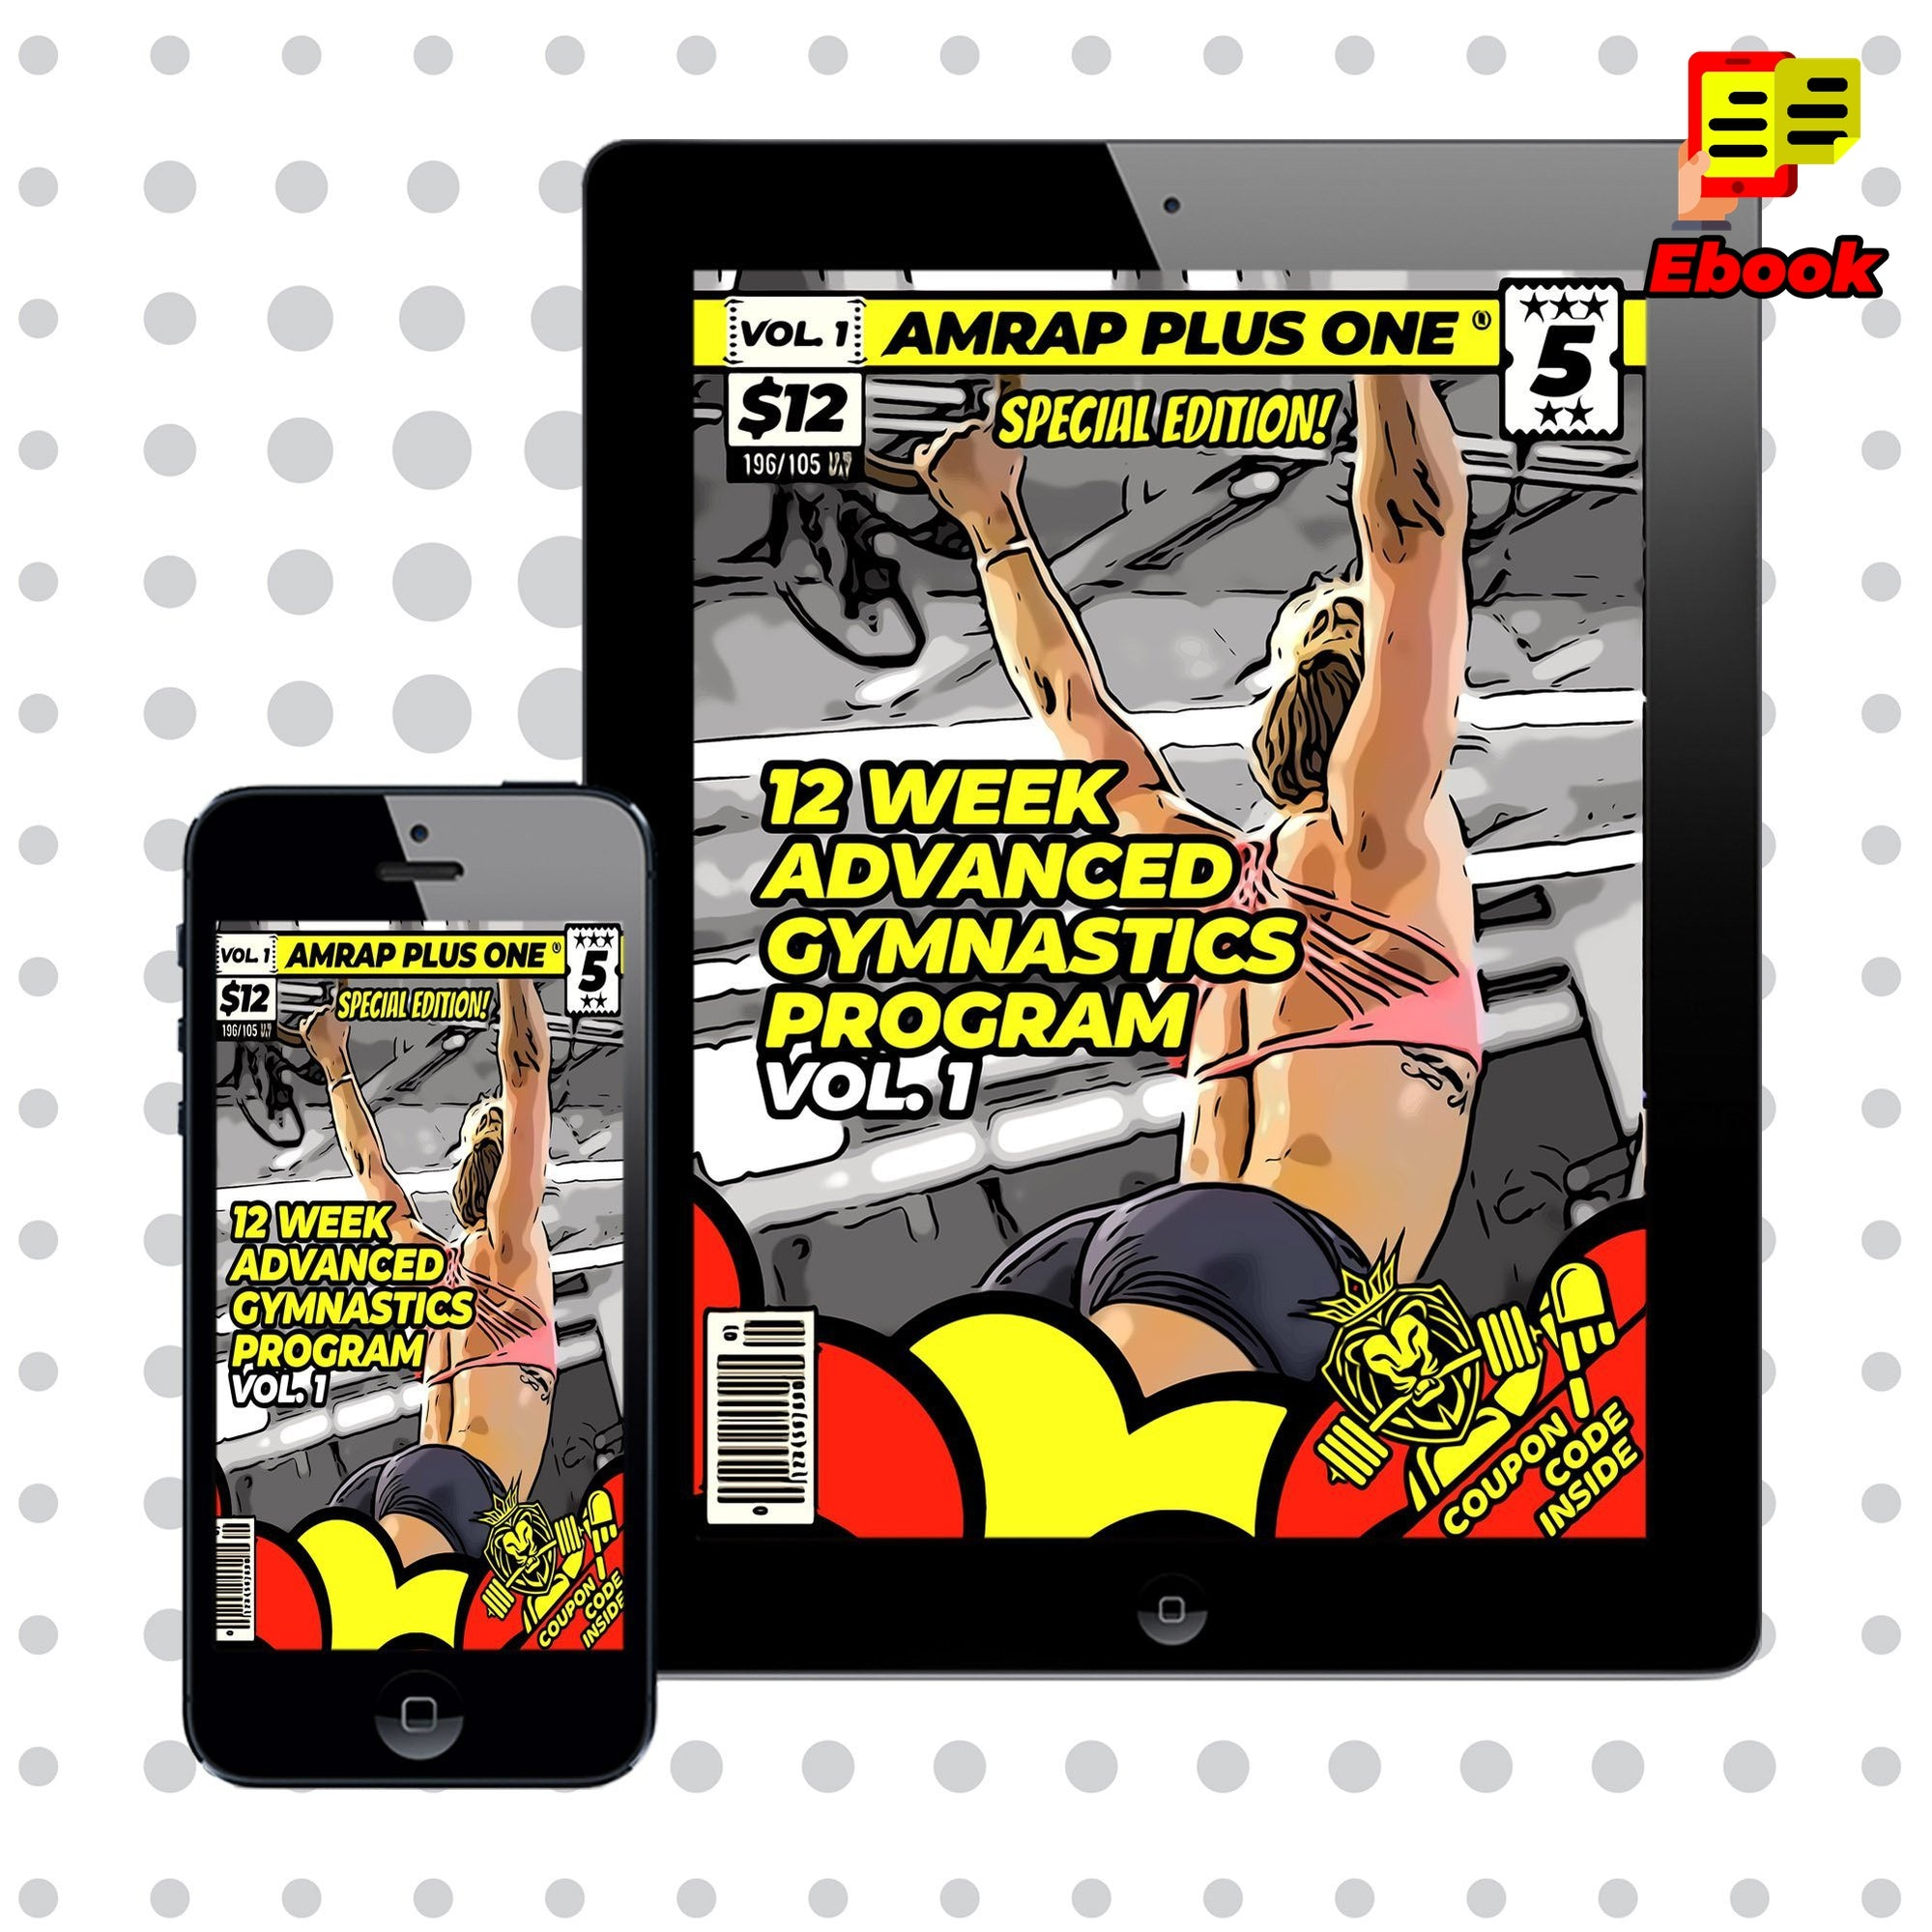 12-Week Advanced Gymnastics Program - AMRAP Plus One